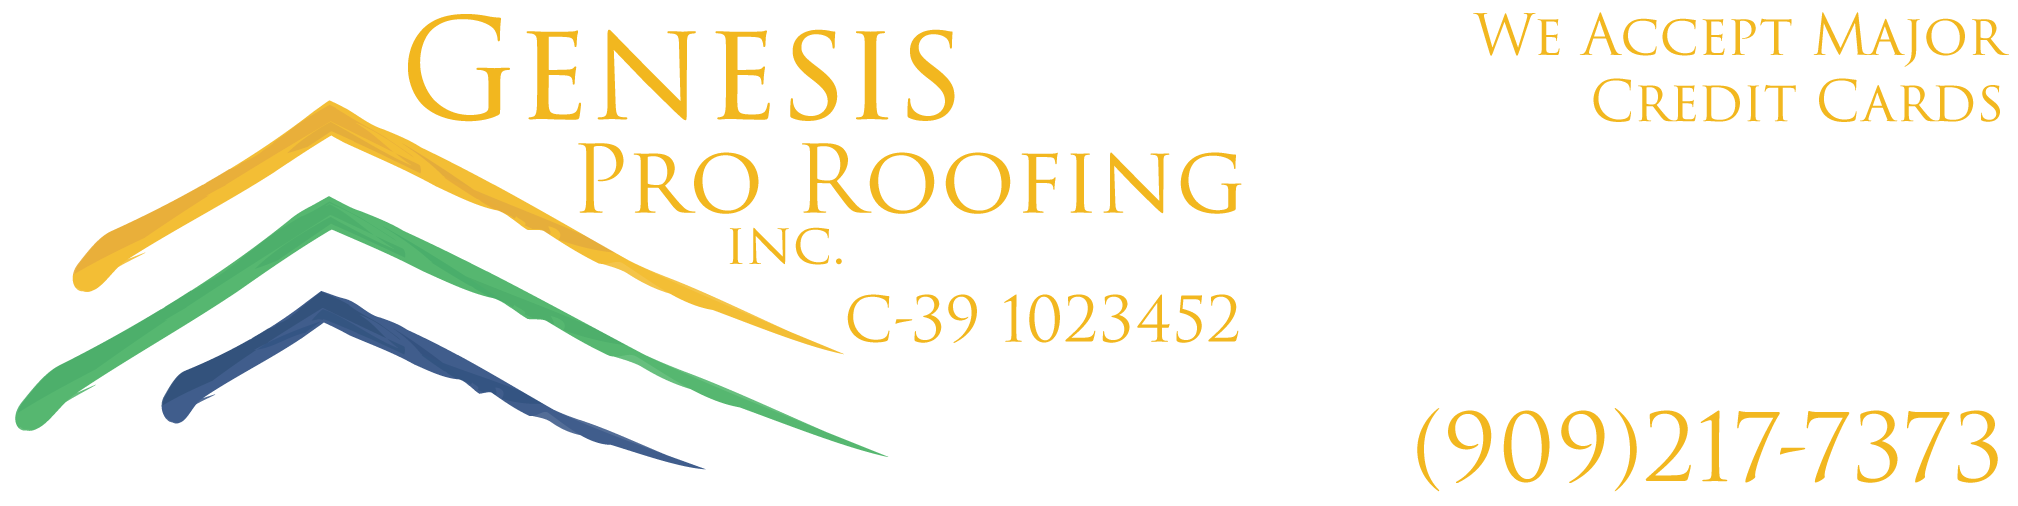 Genesis Pro Roofing-Southern California Premier Roofer